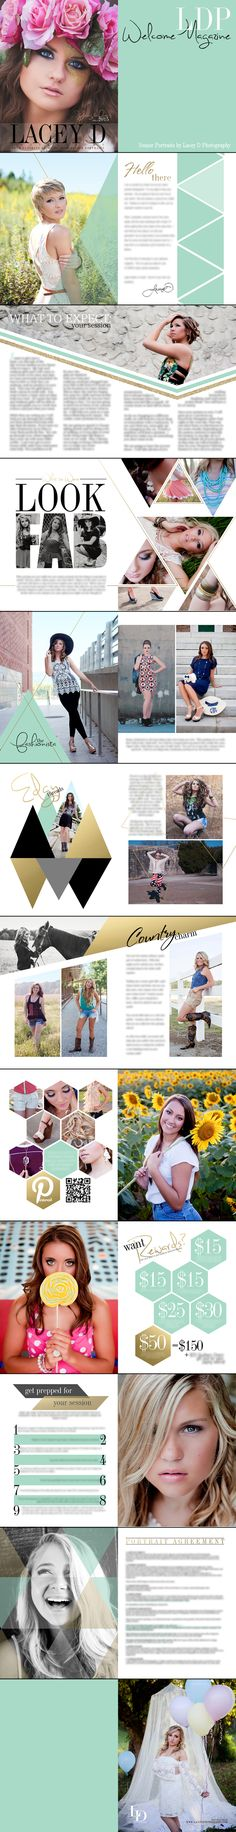 Lacey D Photography Welcome Magazine - Welcome Packet - Senior Portraits - Packaging